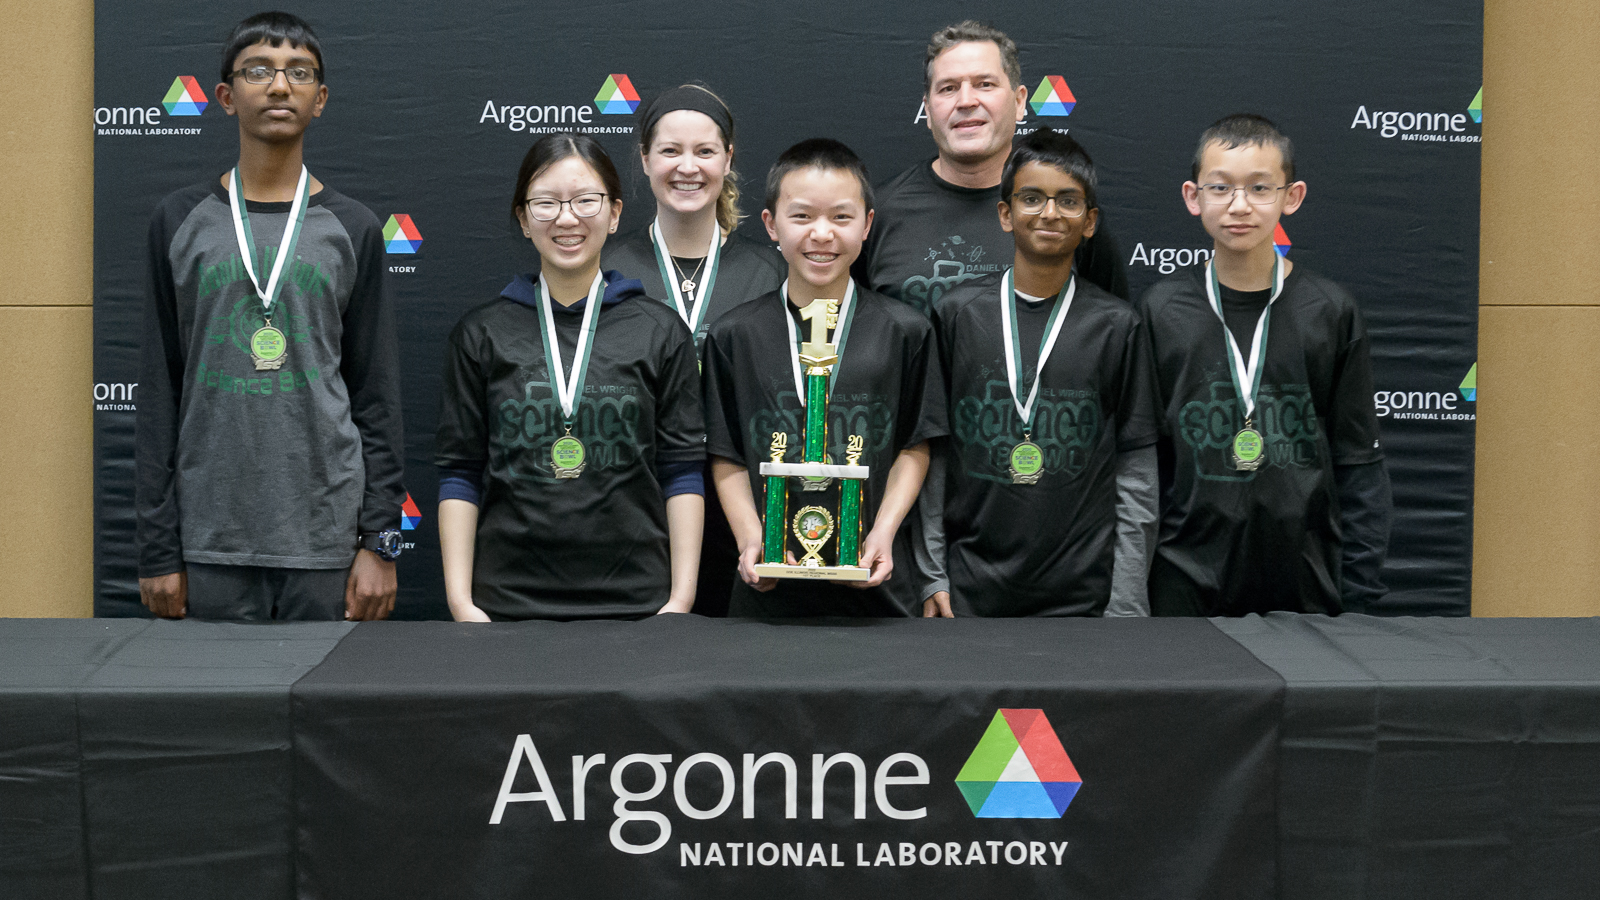 Daniel Wright Junior High School poses with their first place trophy at the Regional Science Bowl. (Image by Argonne National Laboratory.)